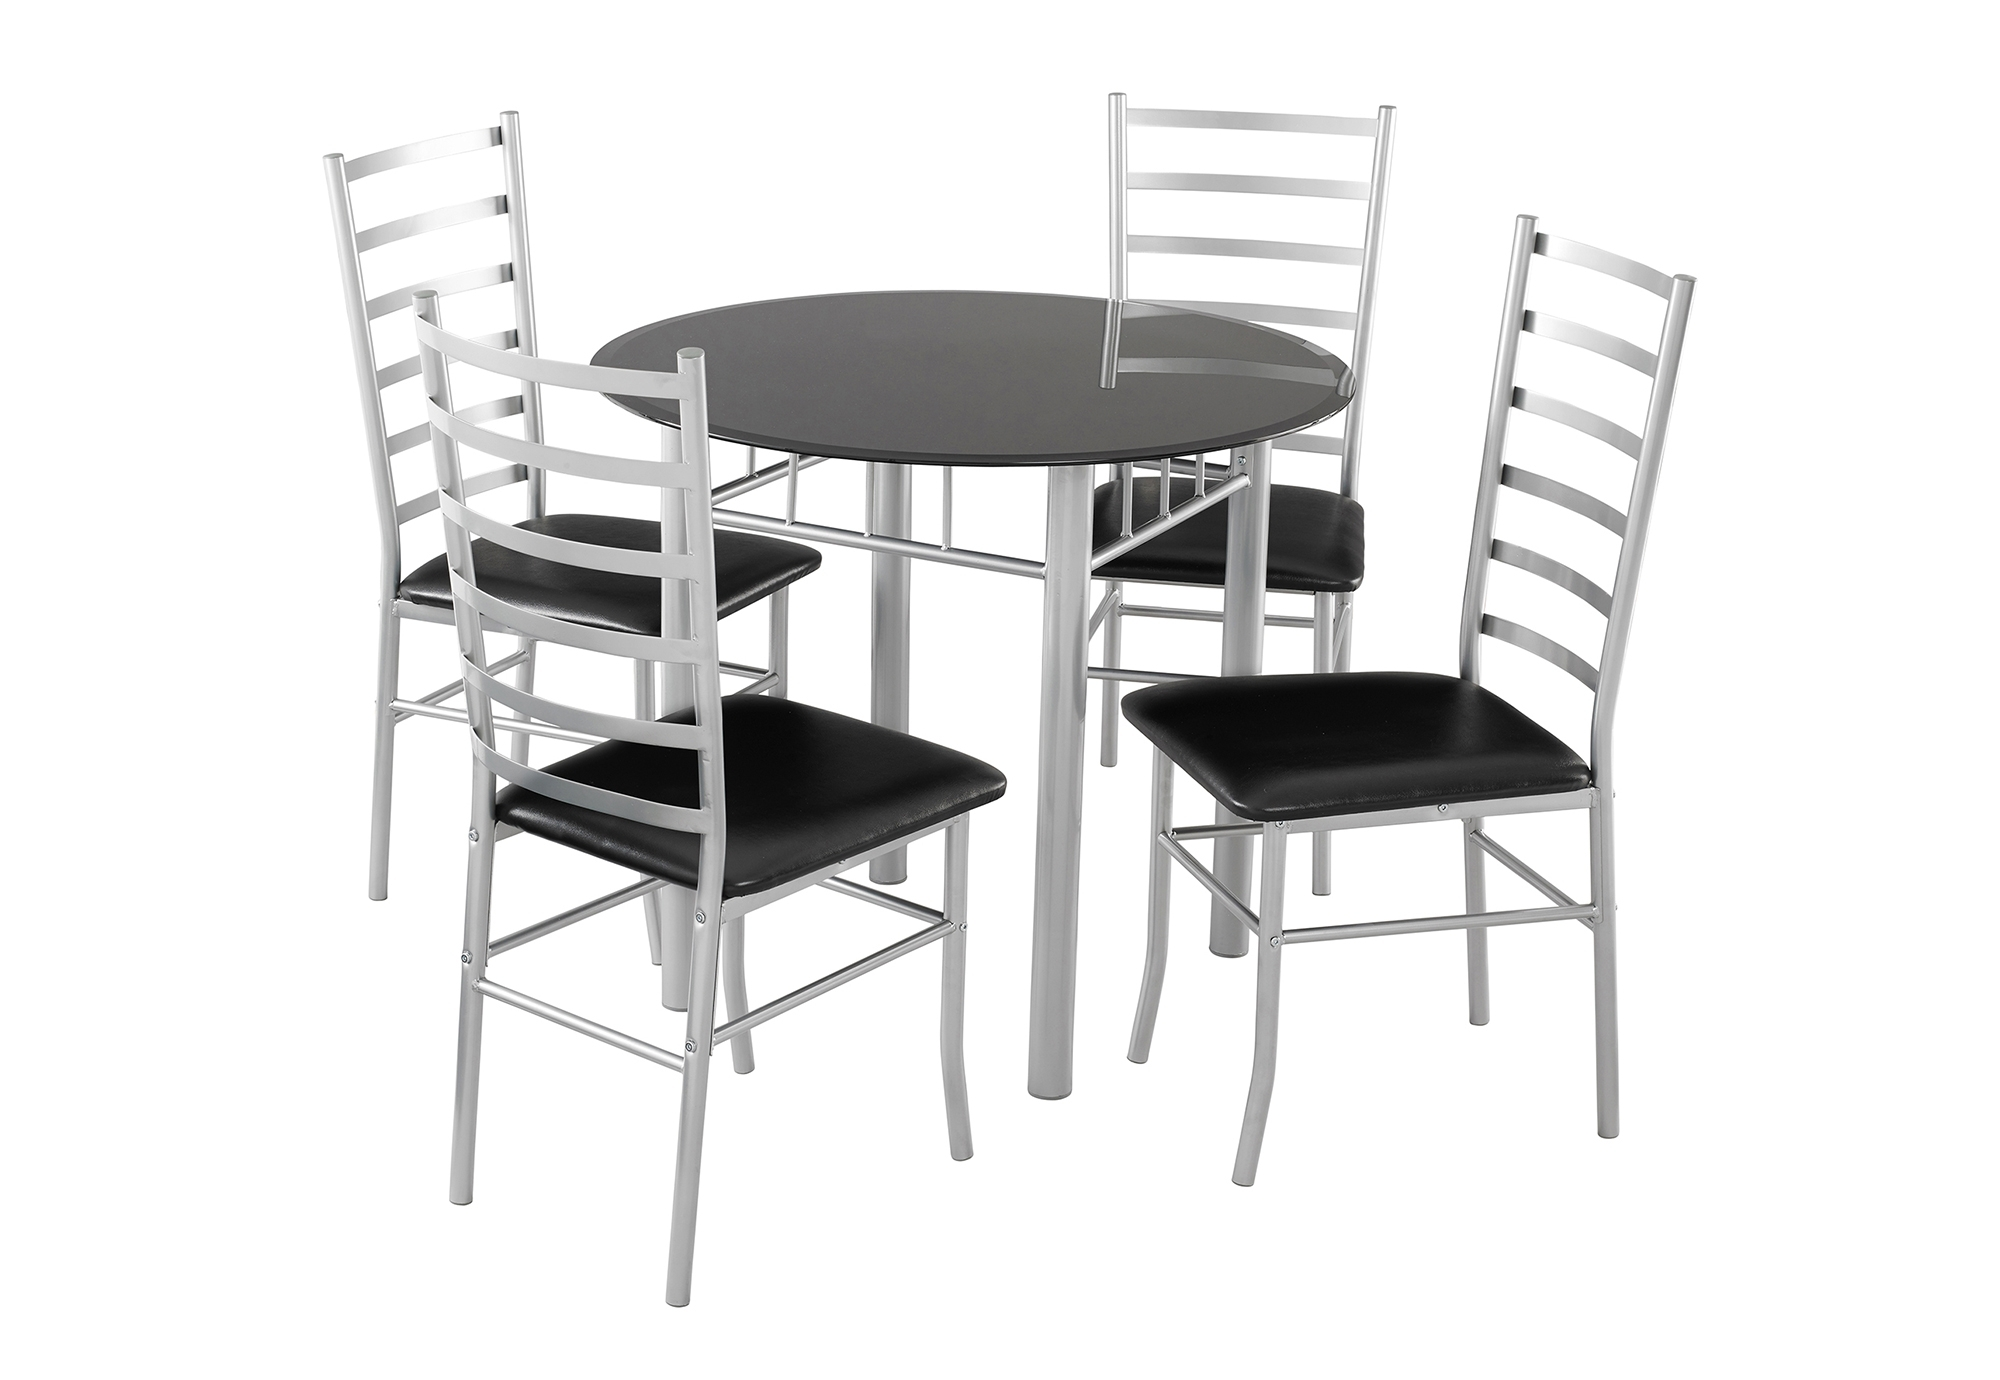 2017 Glass Dining Tables Regarding Lincoln Dining Set 4 Seater – Black Glass Dining Table & 4 Chairs (View 2 of 25)